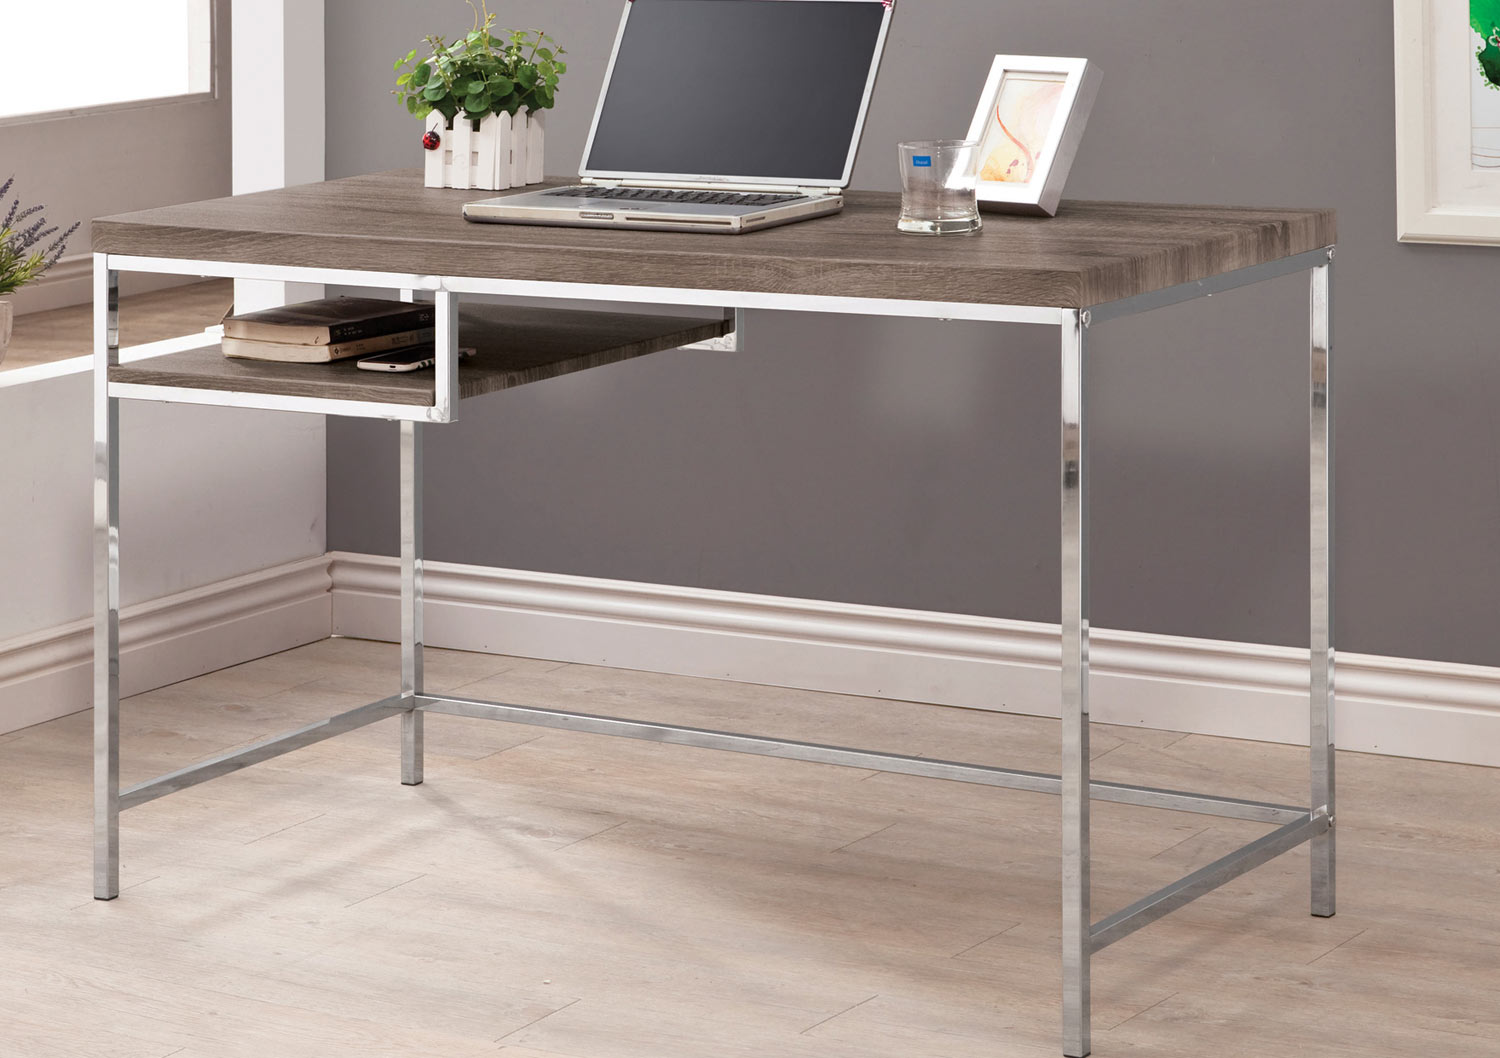 Coaster 801271 Computer Desk - Weathered Grey